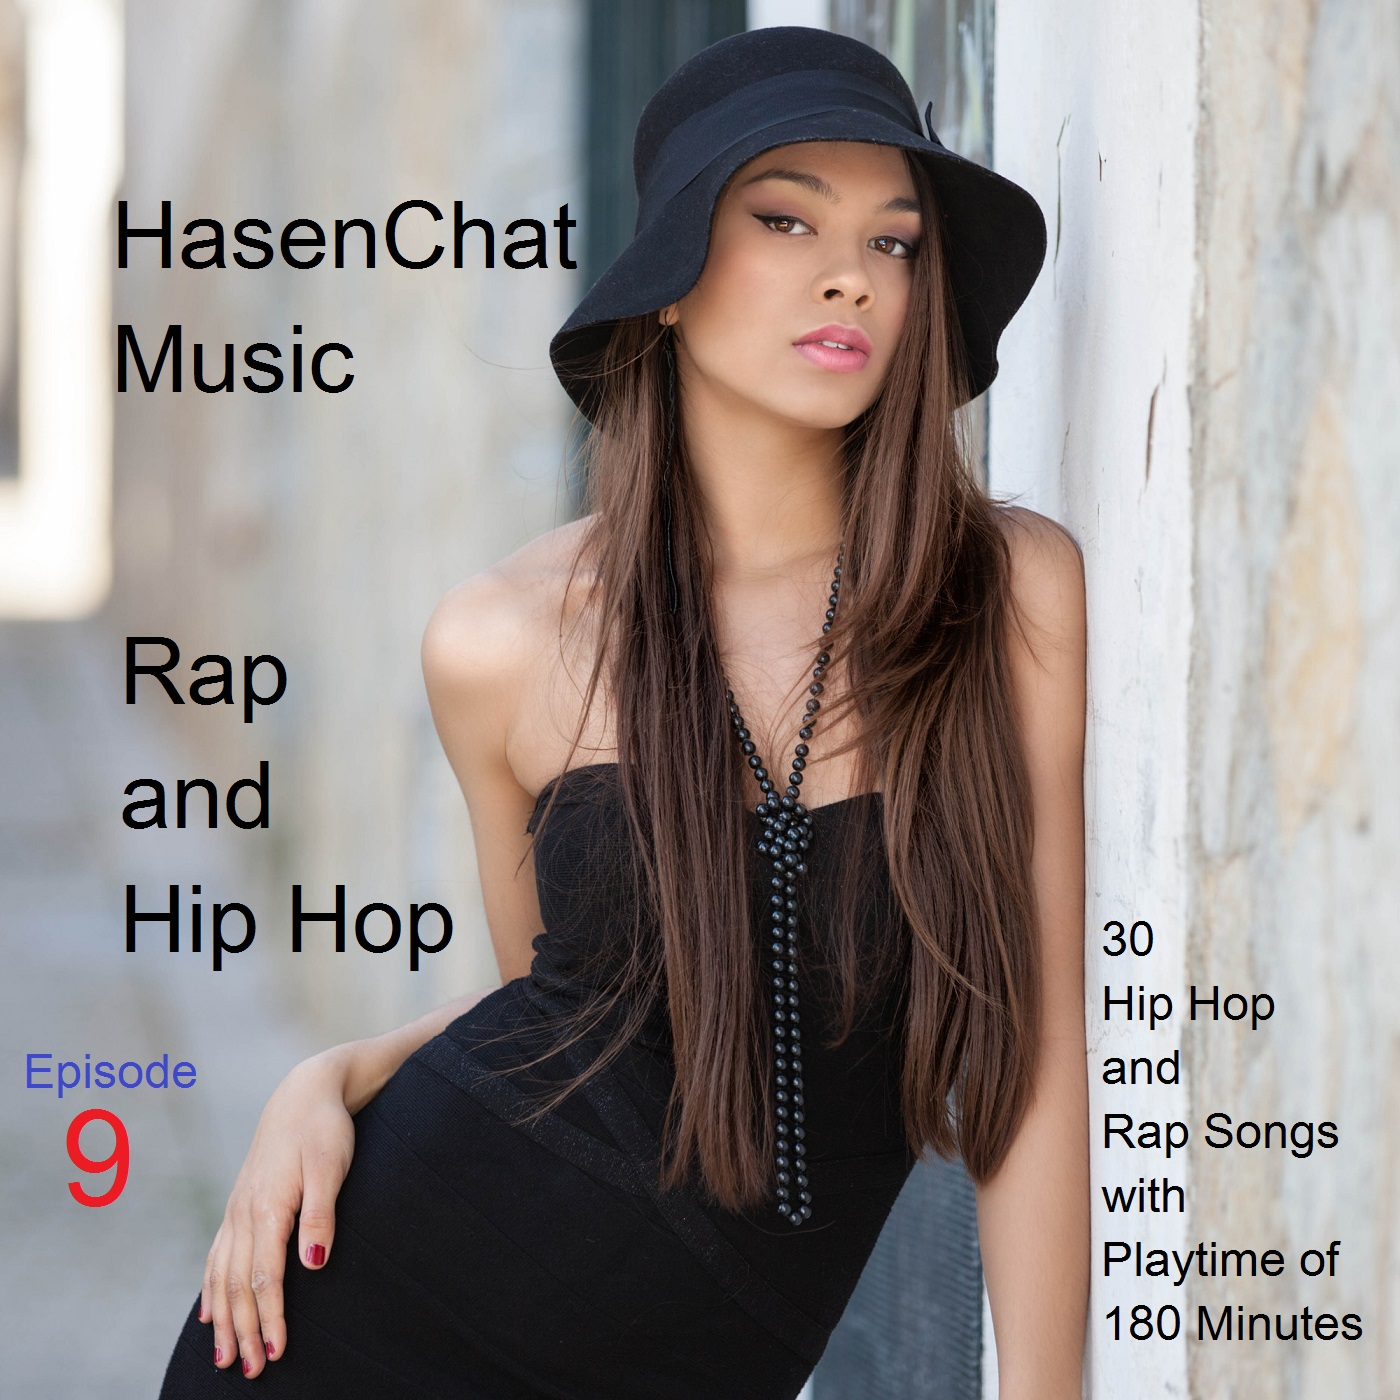 HasenChat Music - Rap and Hip Hop - Episode 9